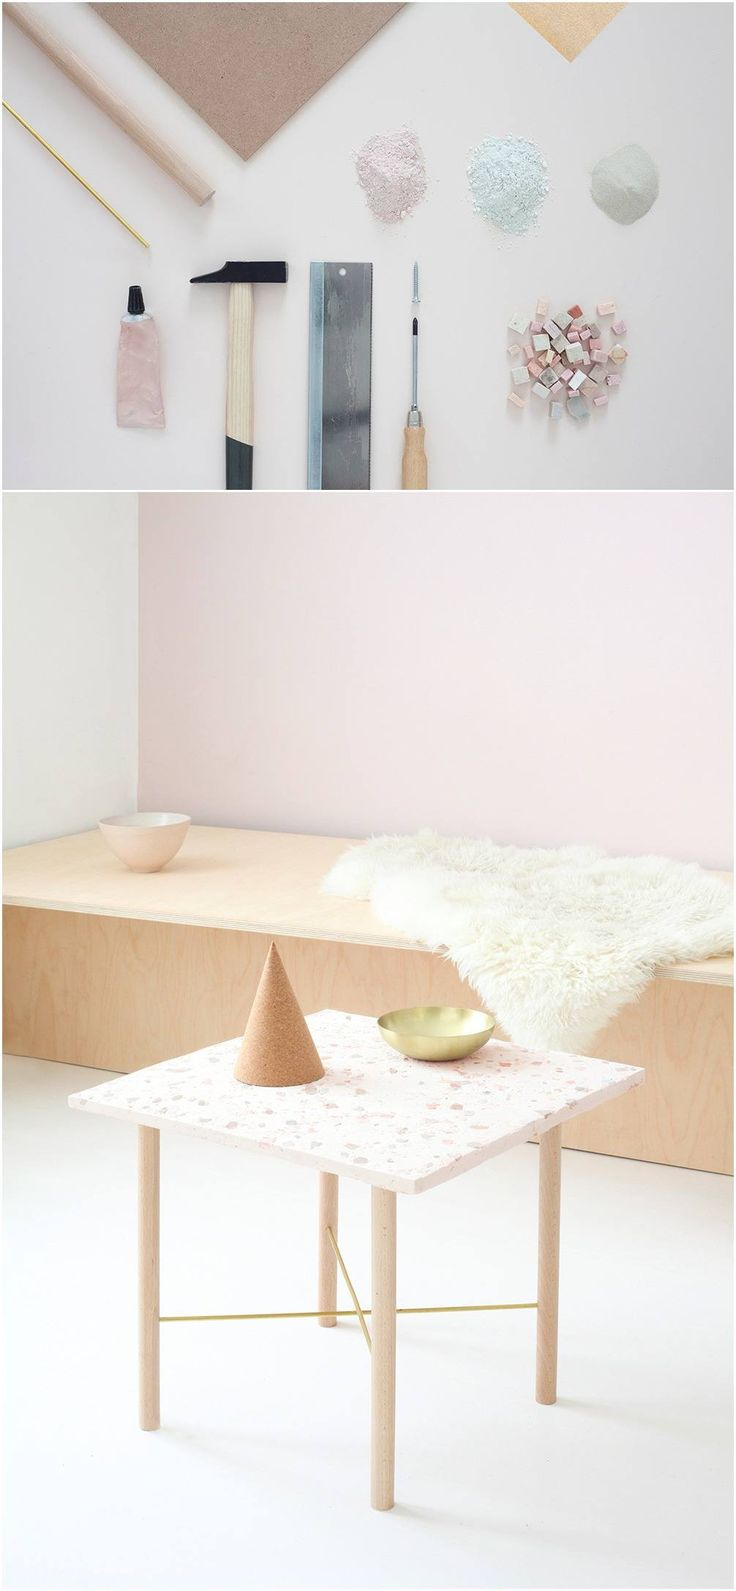 3045 best diy ideas images on pinterest craft ideas - Mesa de granito ...